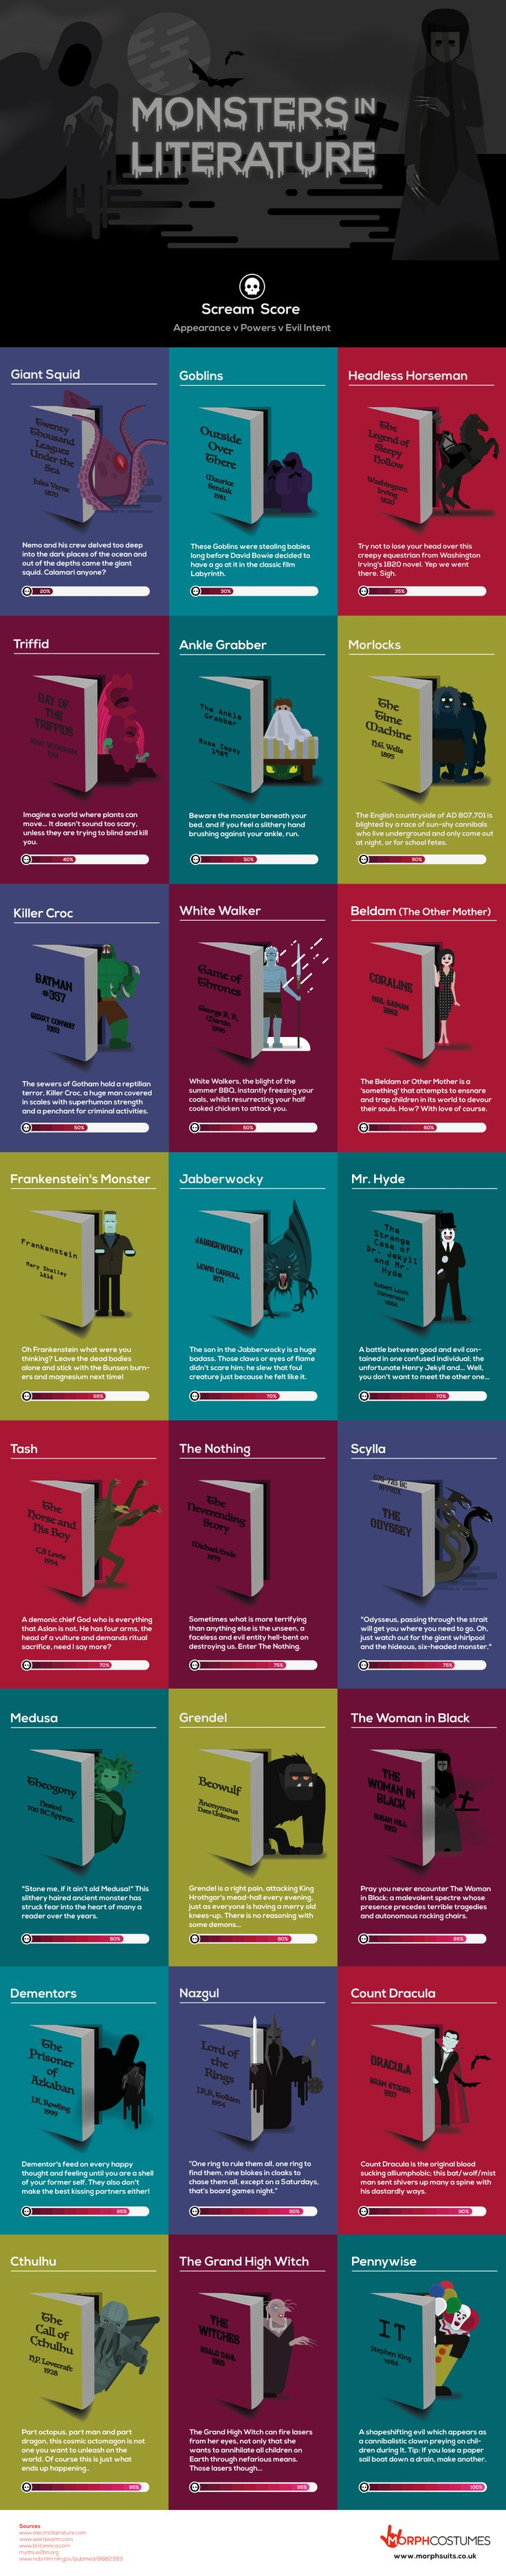 Looking for some scary October reading? Check out this infographic of awesome literary monsters from MorphCostumes.